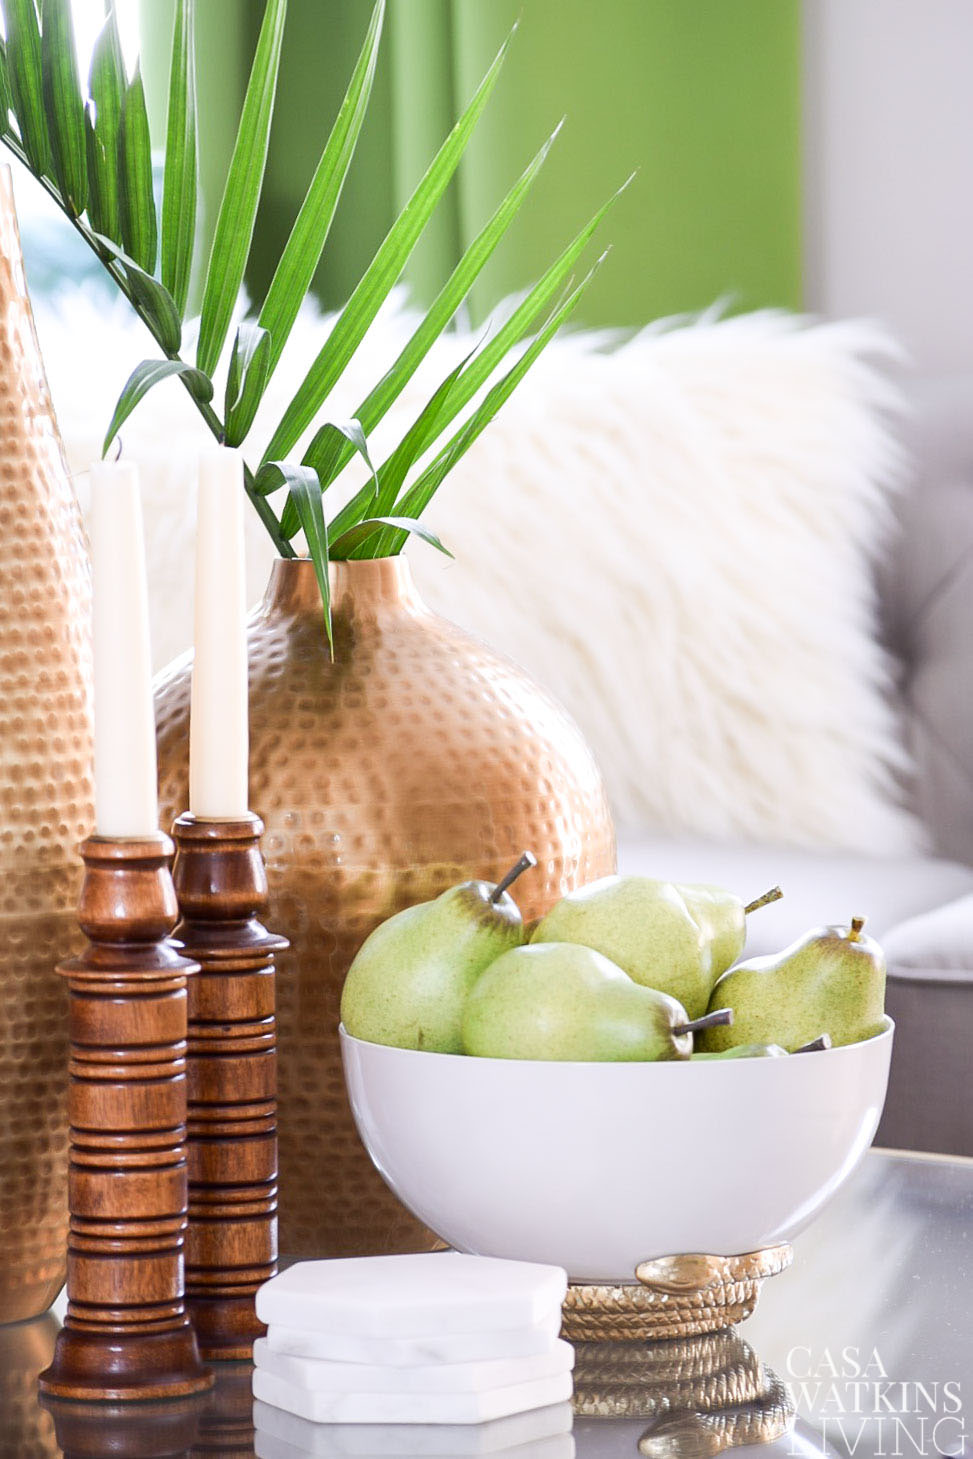 global eclectic table styling with green pears and palm frond